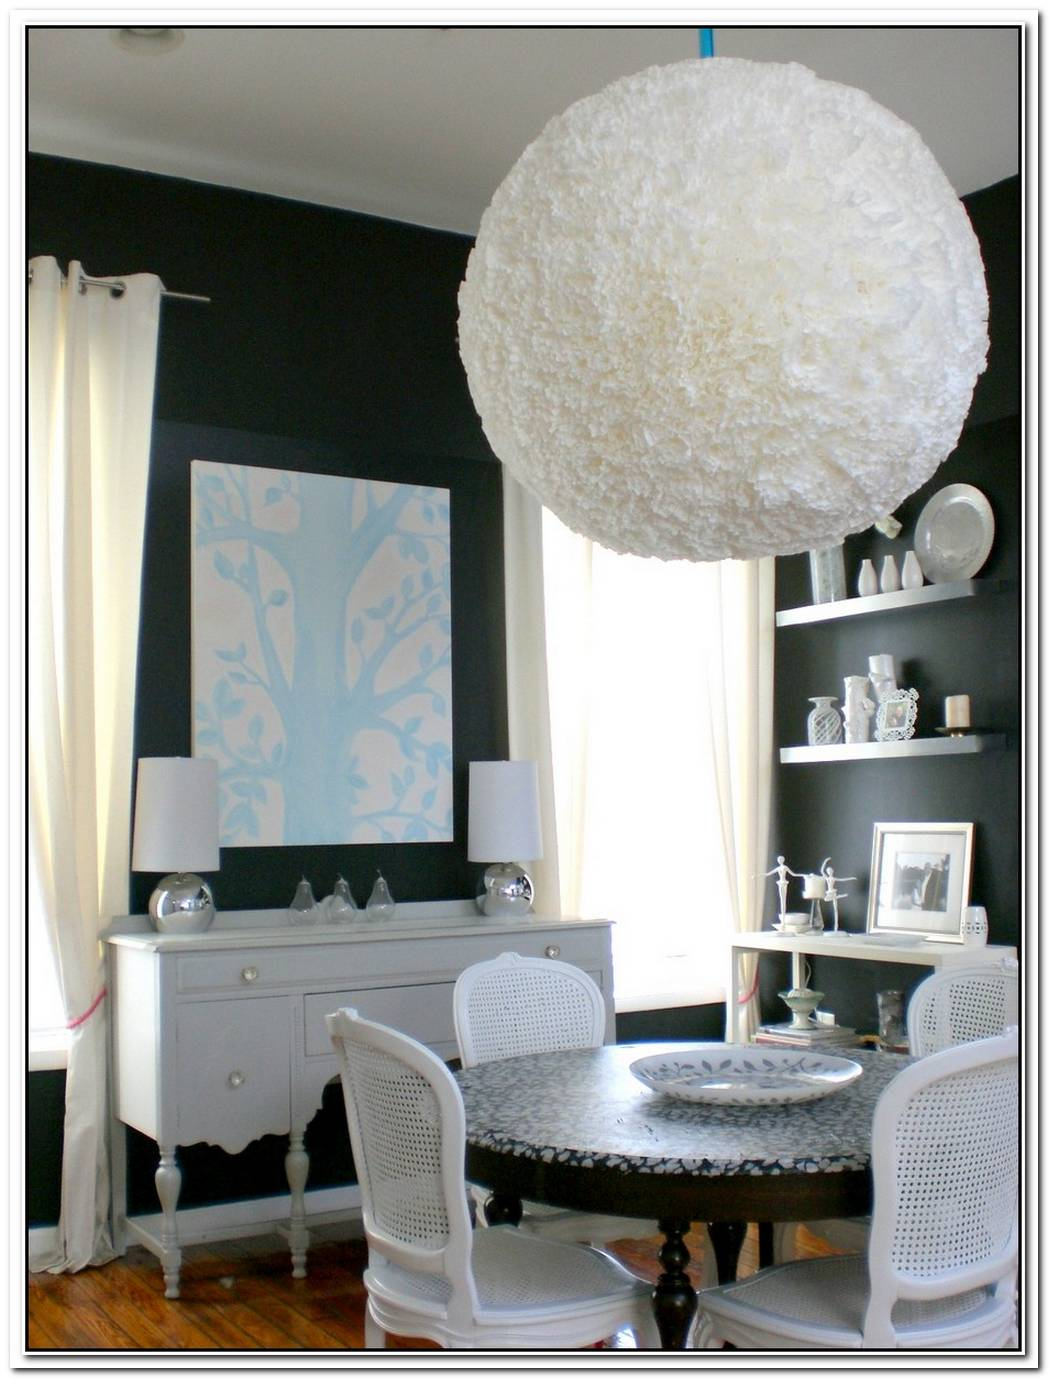 Fluffy Diy Coffee Filter Lamp Shade